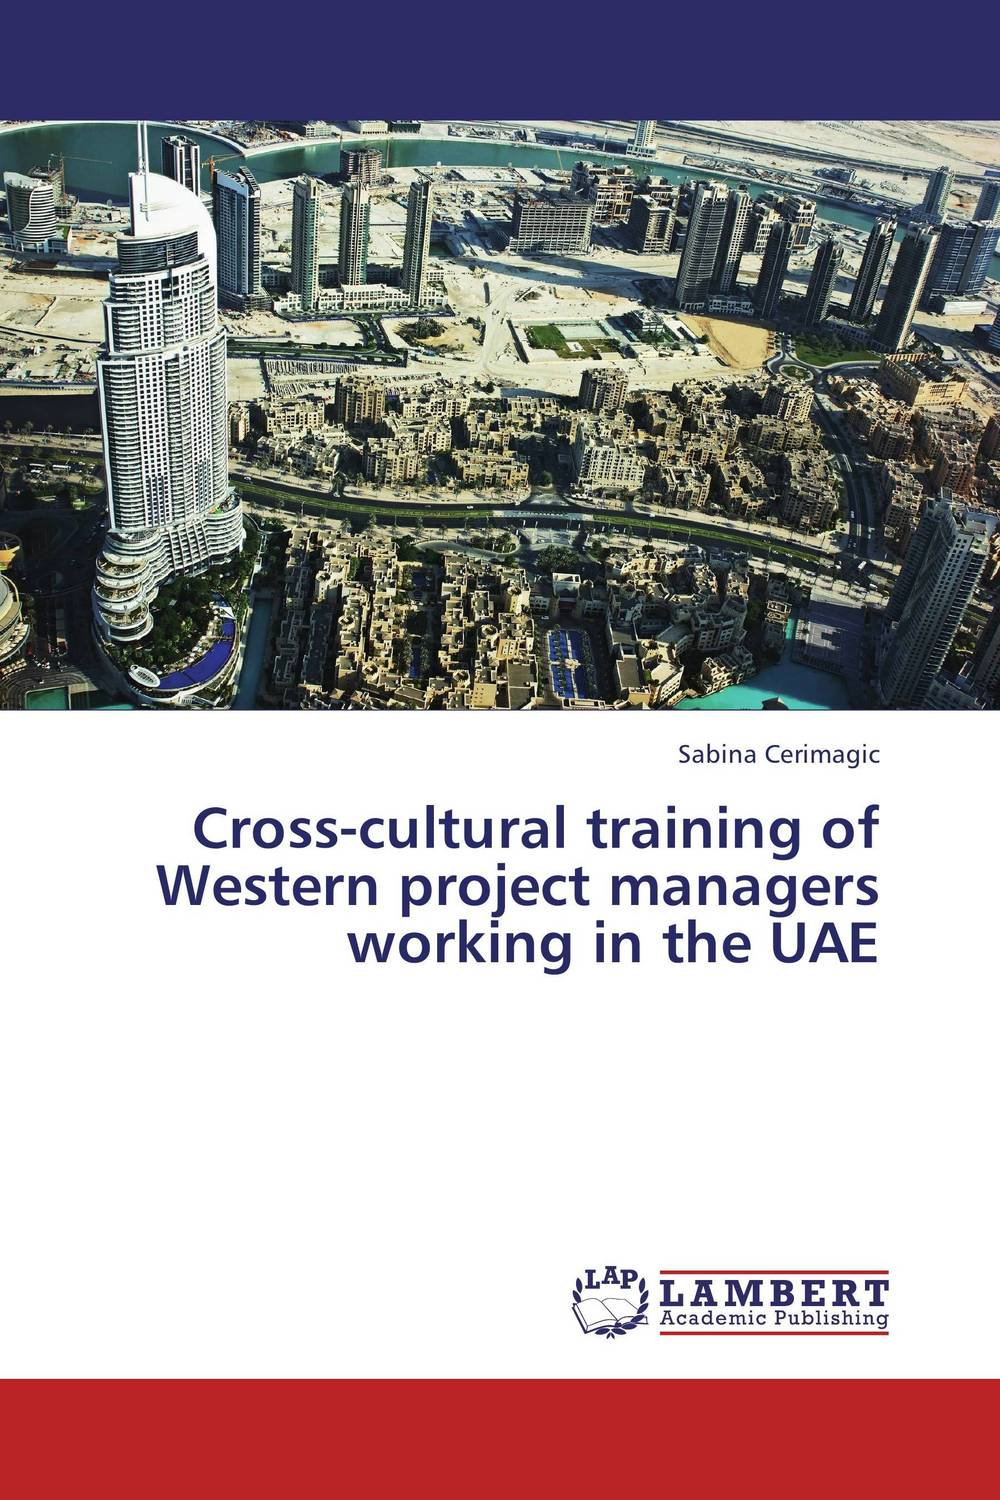 Cross-cultural training of Western project managers working in the UAE